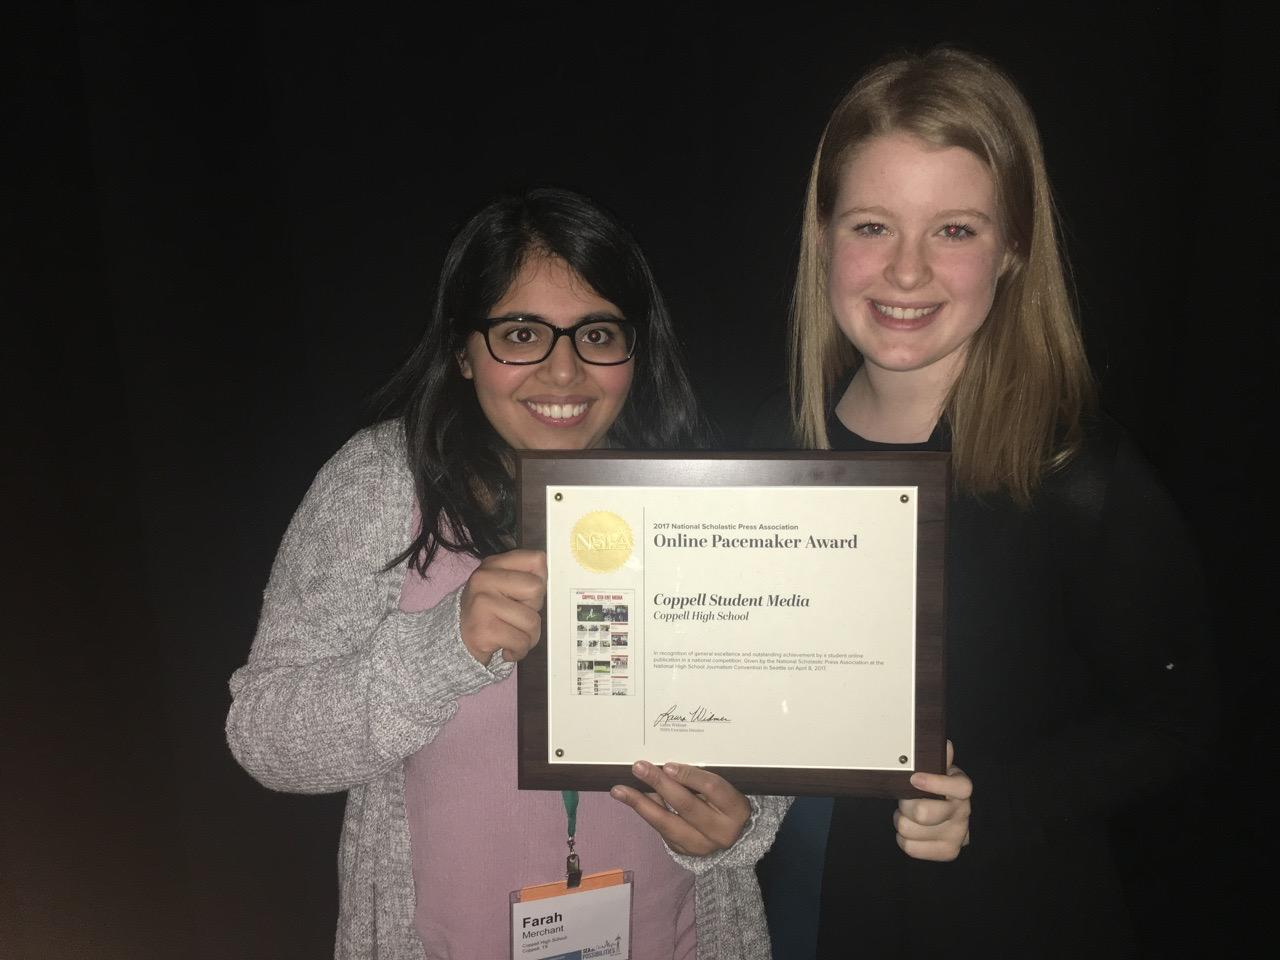 Former Sidekick Editor-in-Chief Meara Isenberg and current Sidekick C0-Student Life Editor Farah Merchant hold up the 2017 NSPA  Online Pacemaker Award given to Coppell Student Media in the spring convention in Seattle. This was Coppell Student Media's first Pacemaker award. Isenberg was a mentor for Merchant during her second year on staff.